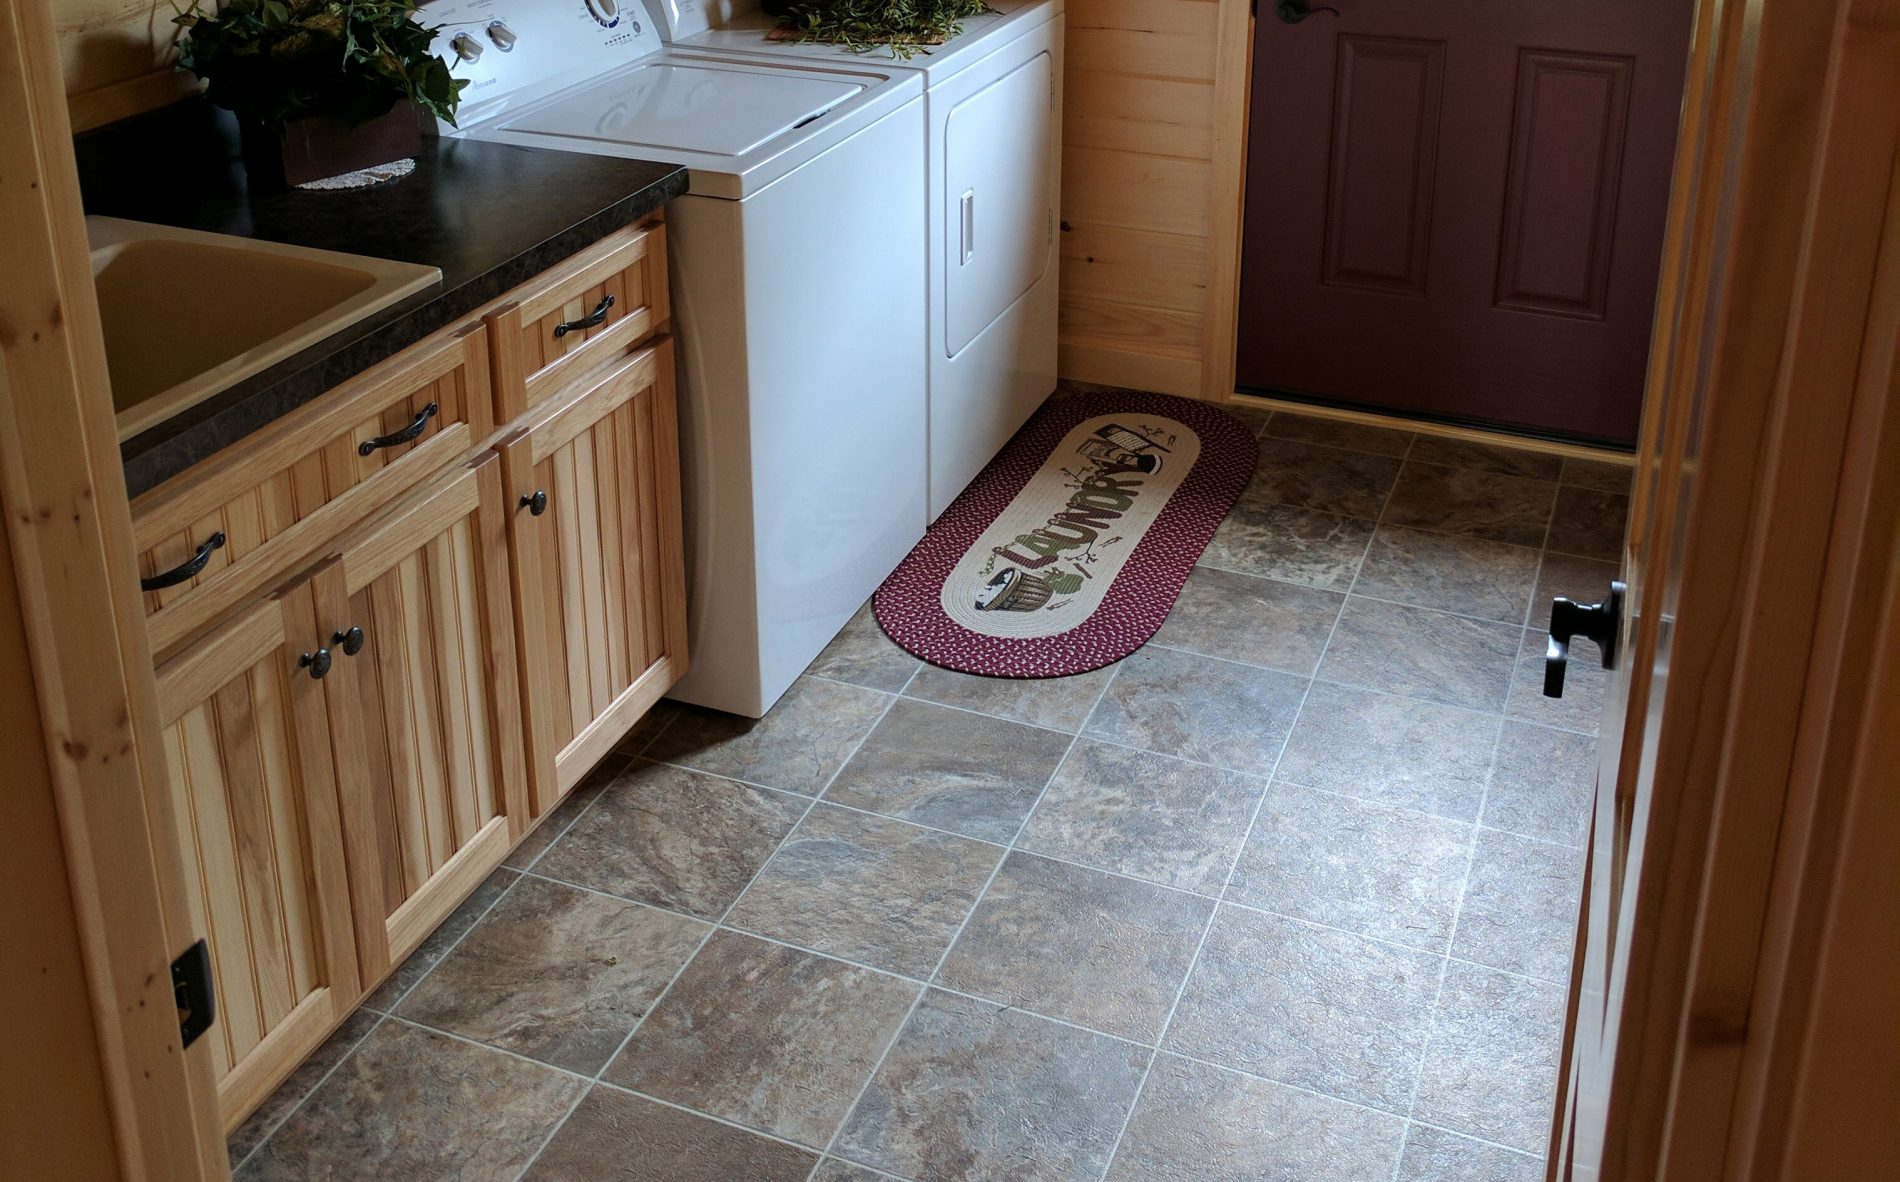 linoleum kitchen flooring fabric for chairs log cabin home builders | custom cabins zook